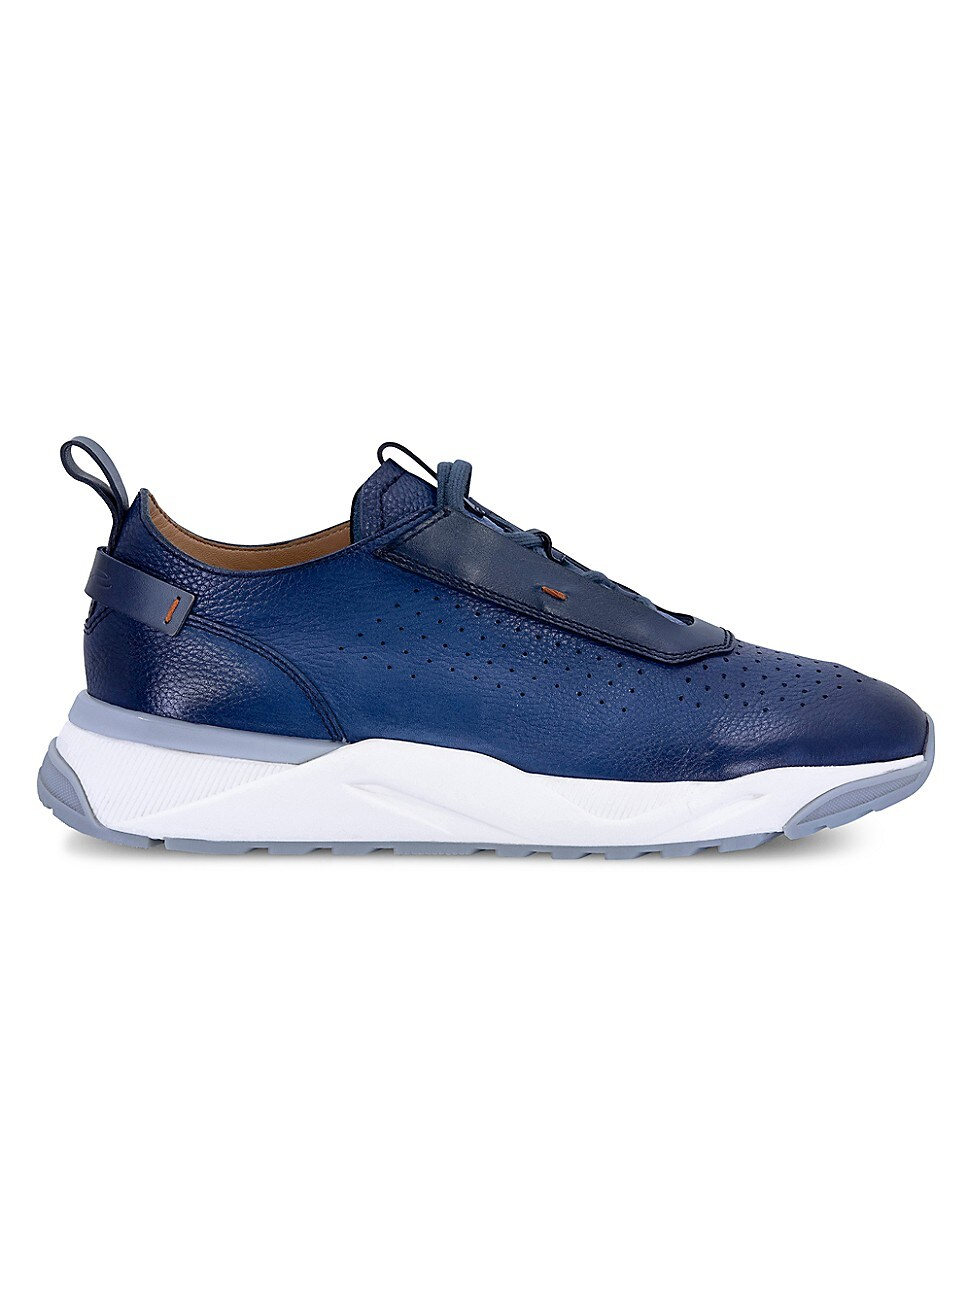 Santoni Leathers MEN'S LEATHER TRAINER SNEAKERS